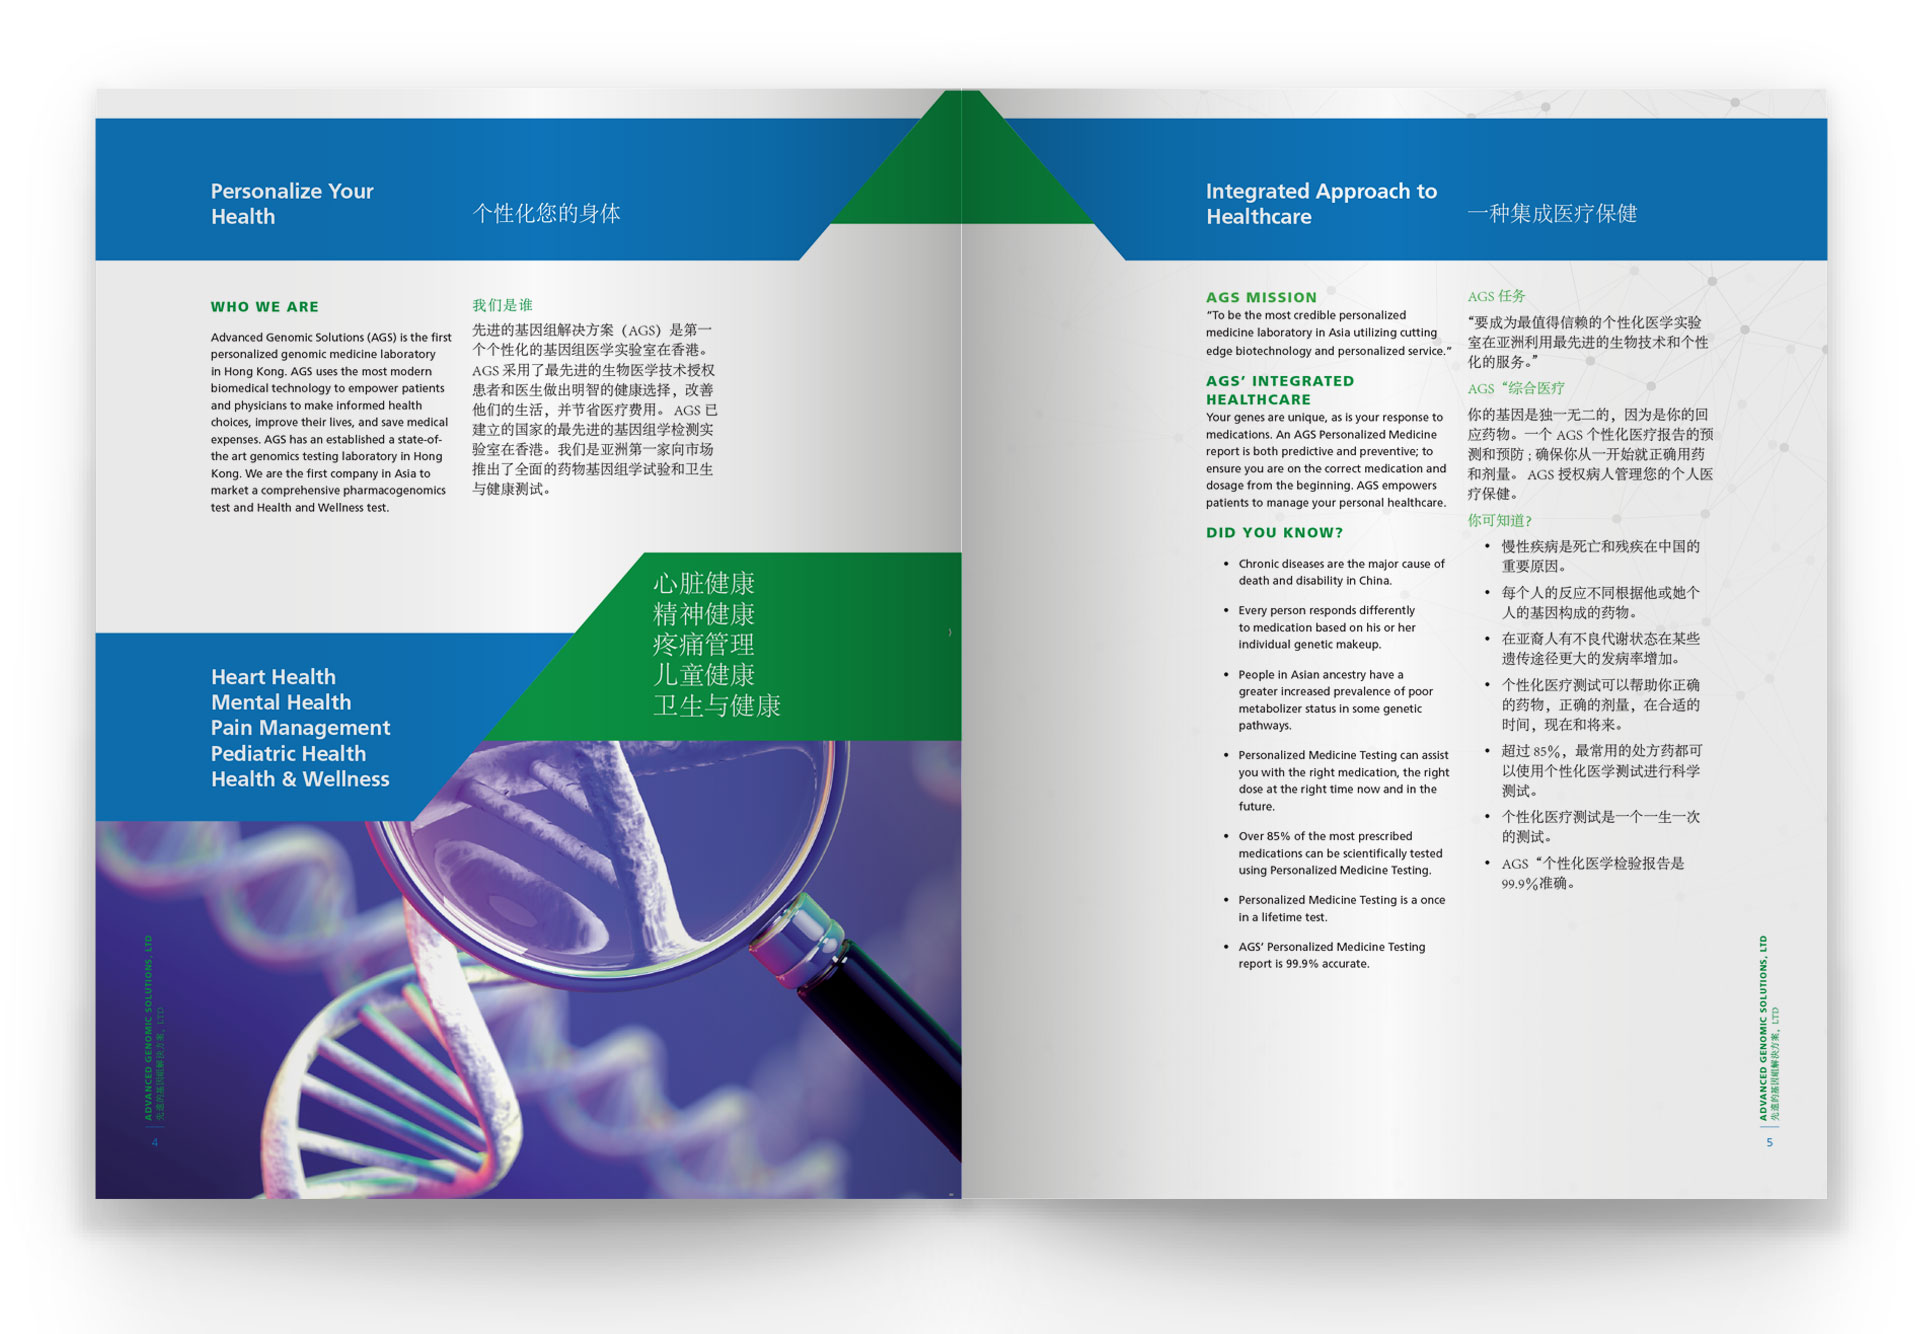 Advanced Genomic Solutions Marketing Collateral Interior Spread Image 1